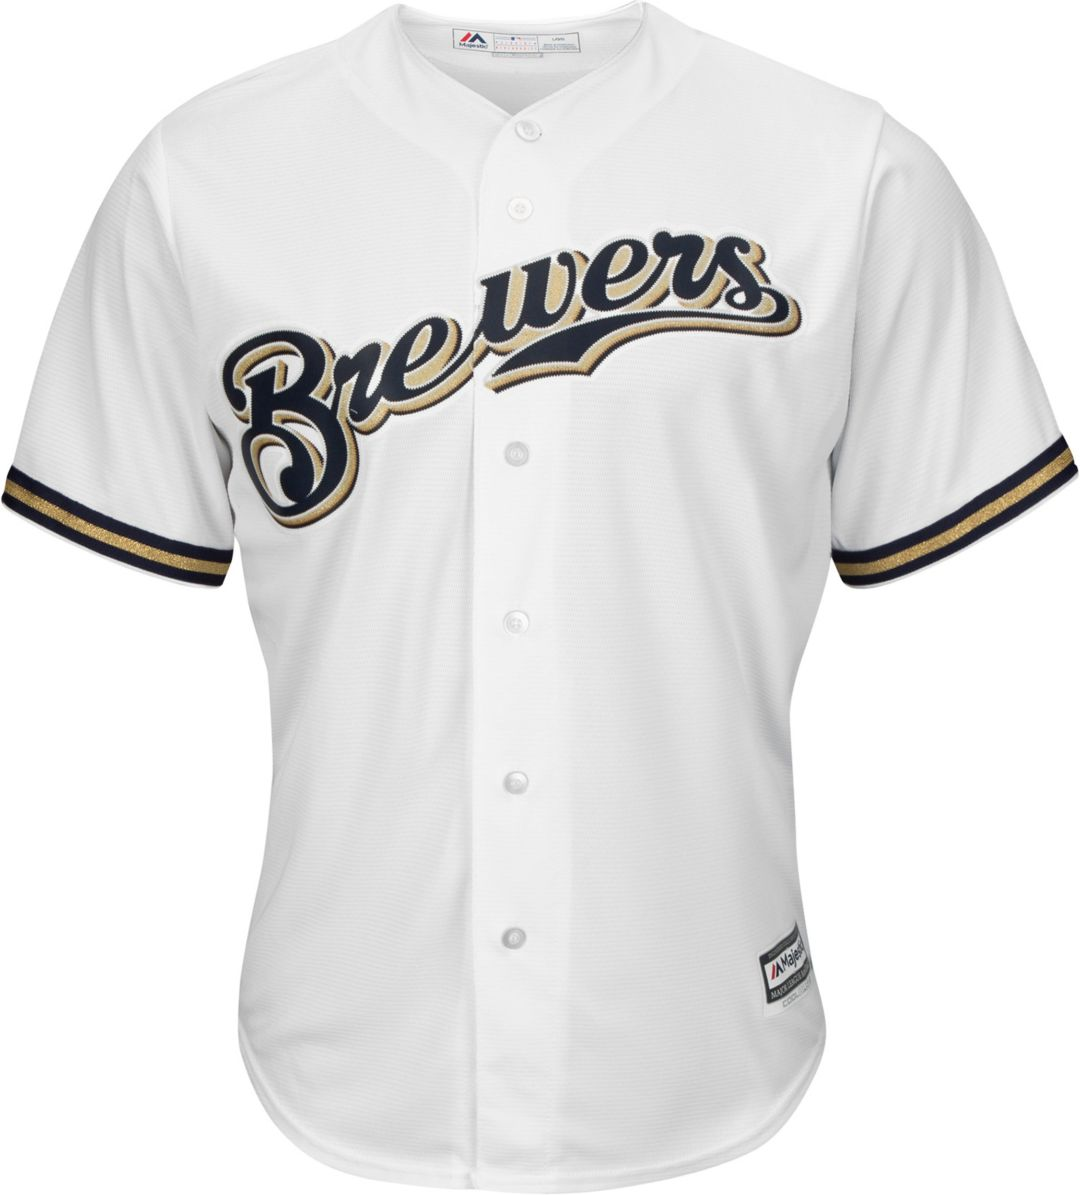 f6295021f97 Majestic Youth Custom Cool Base Replica Milwaukee Brewers Home White Jersey  2